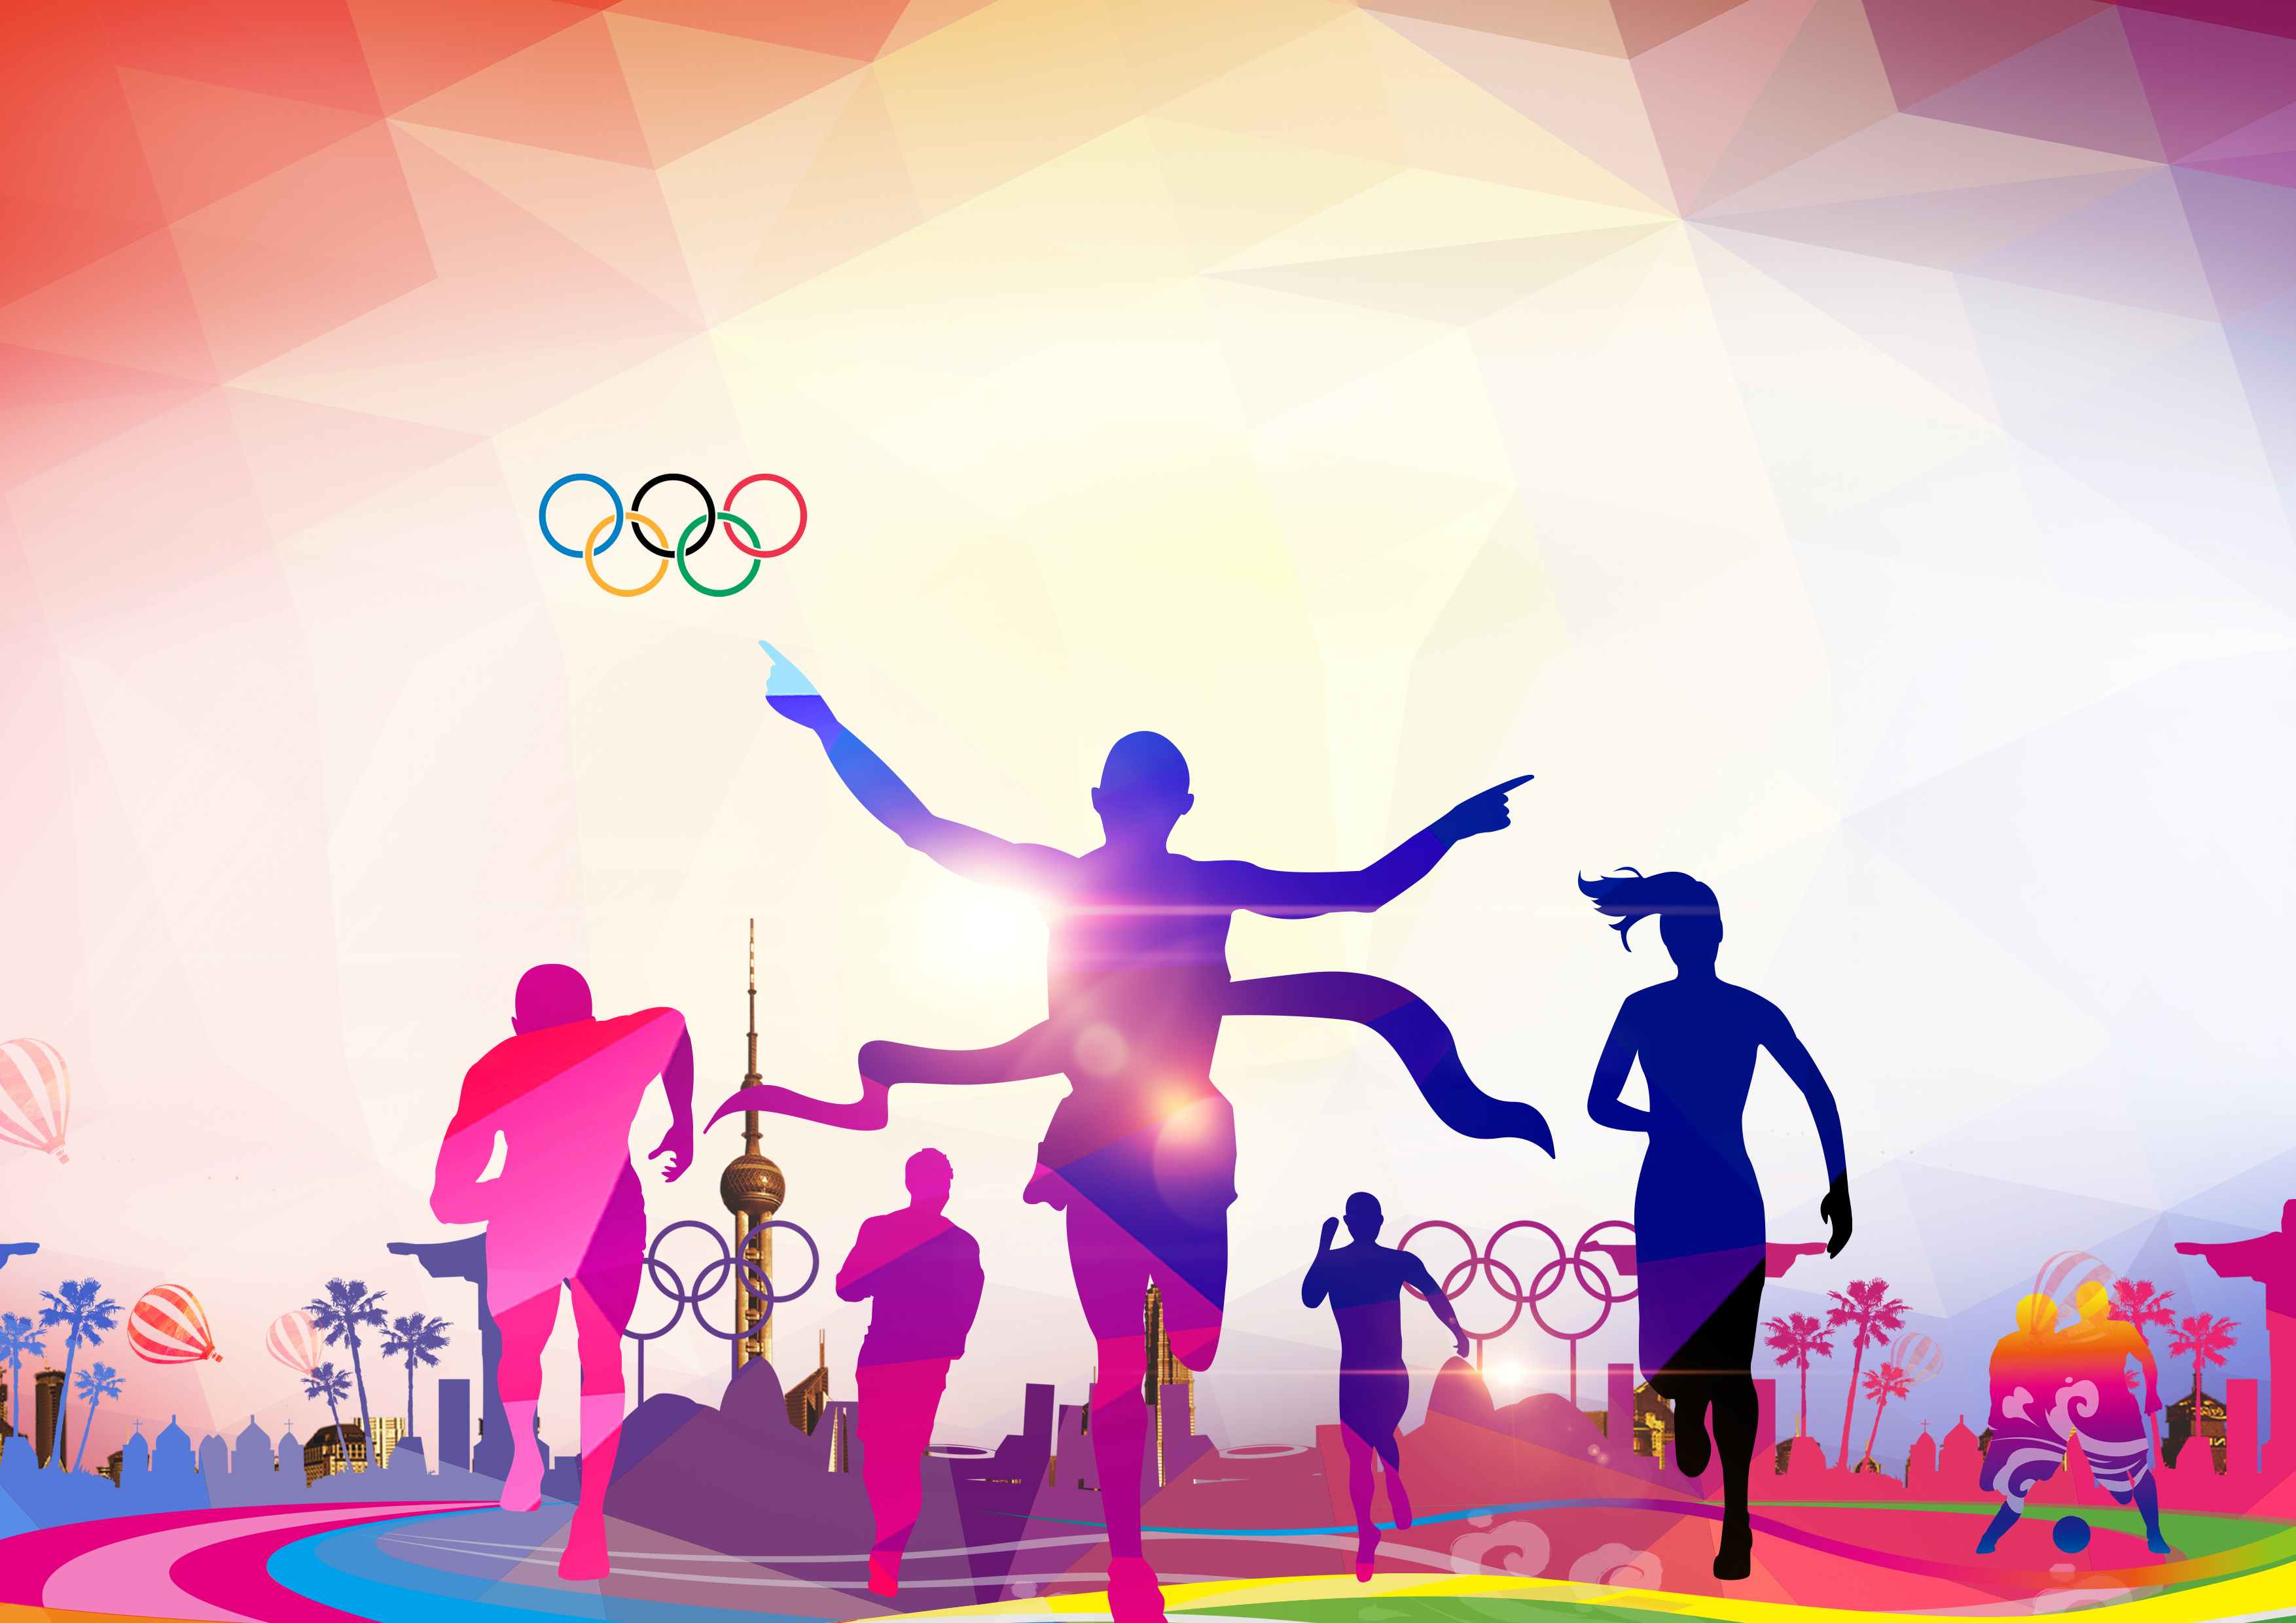 Athletic Backgrounds: People Running Sports Background, Crowd, Run, Movement